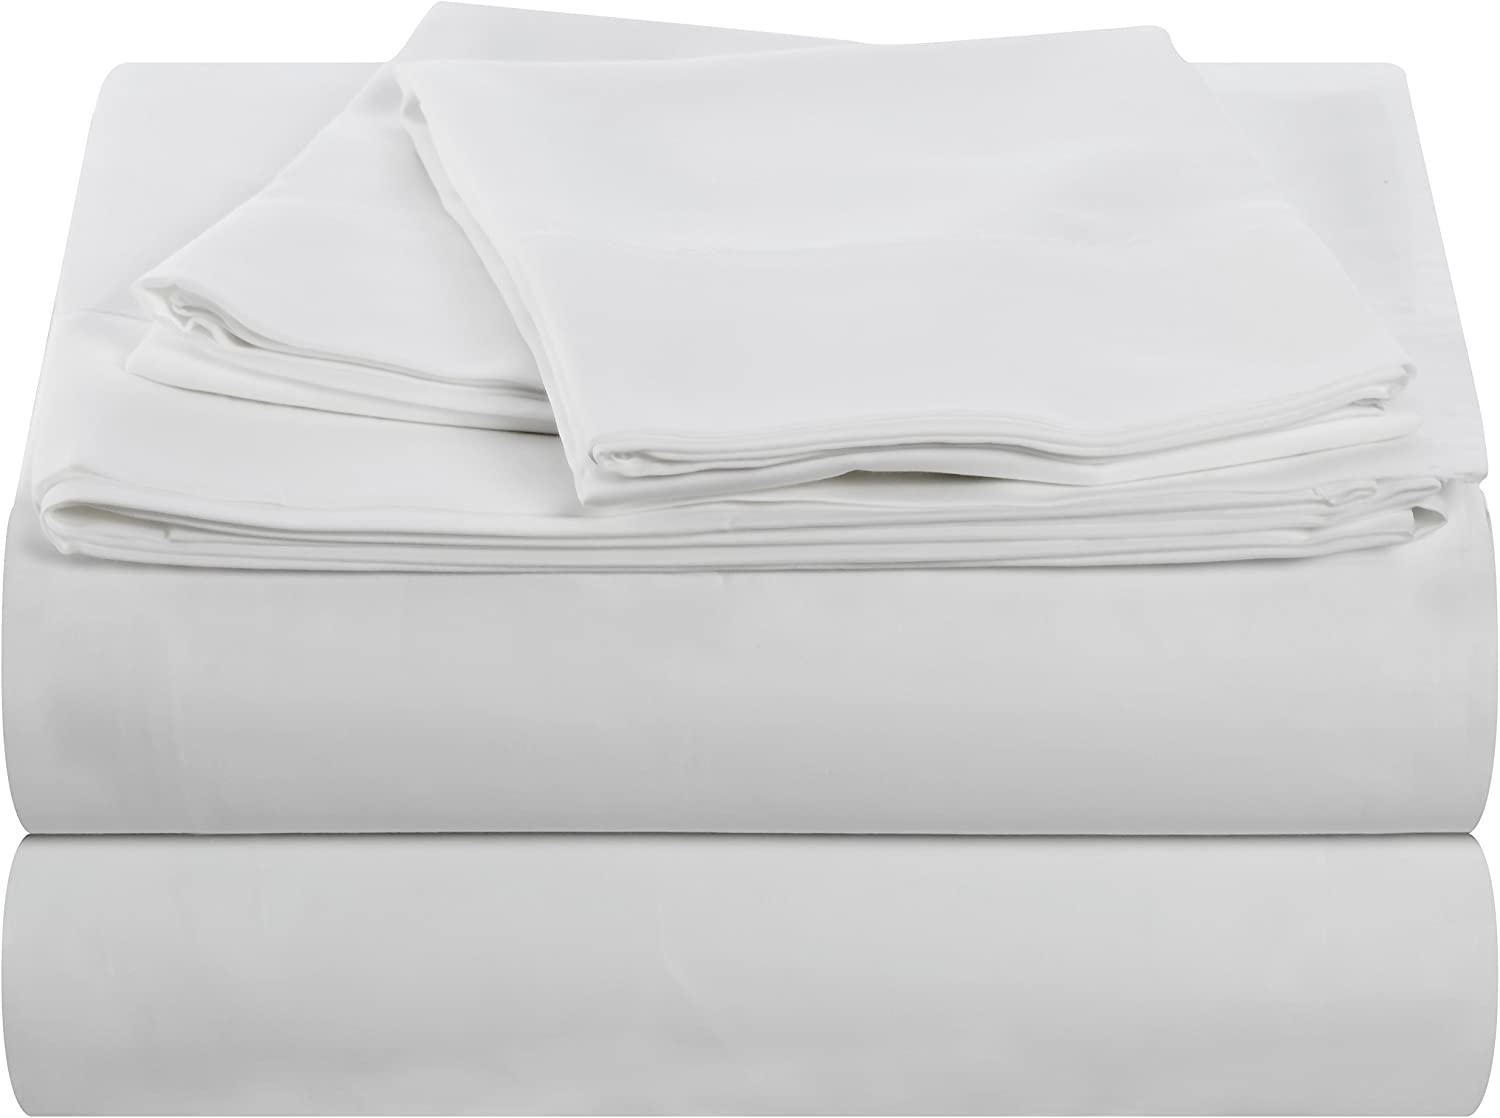 Outlast All Season Temperature Regulating Sheet Set in White, Cal King